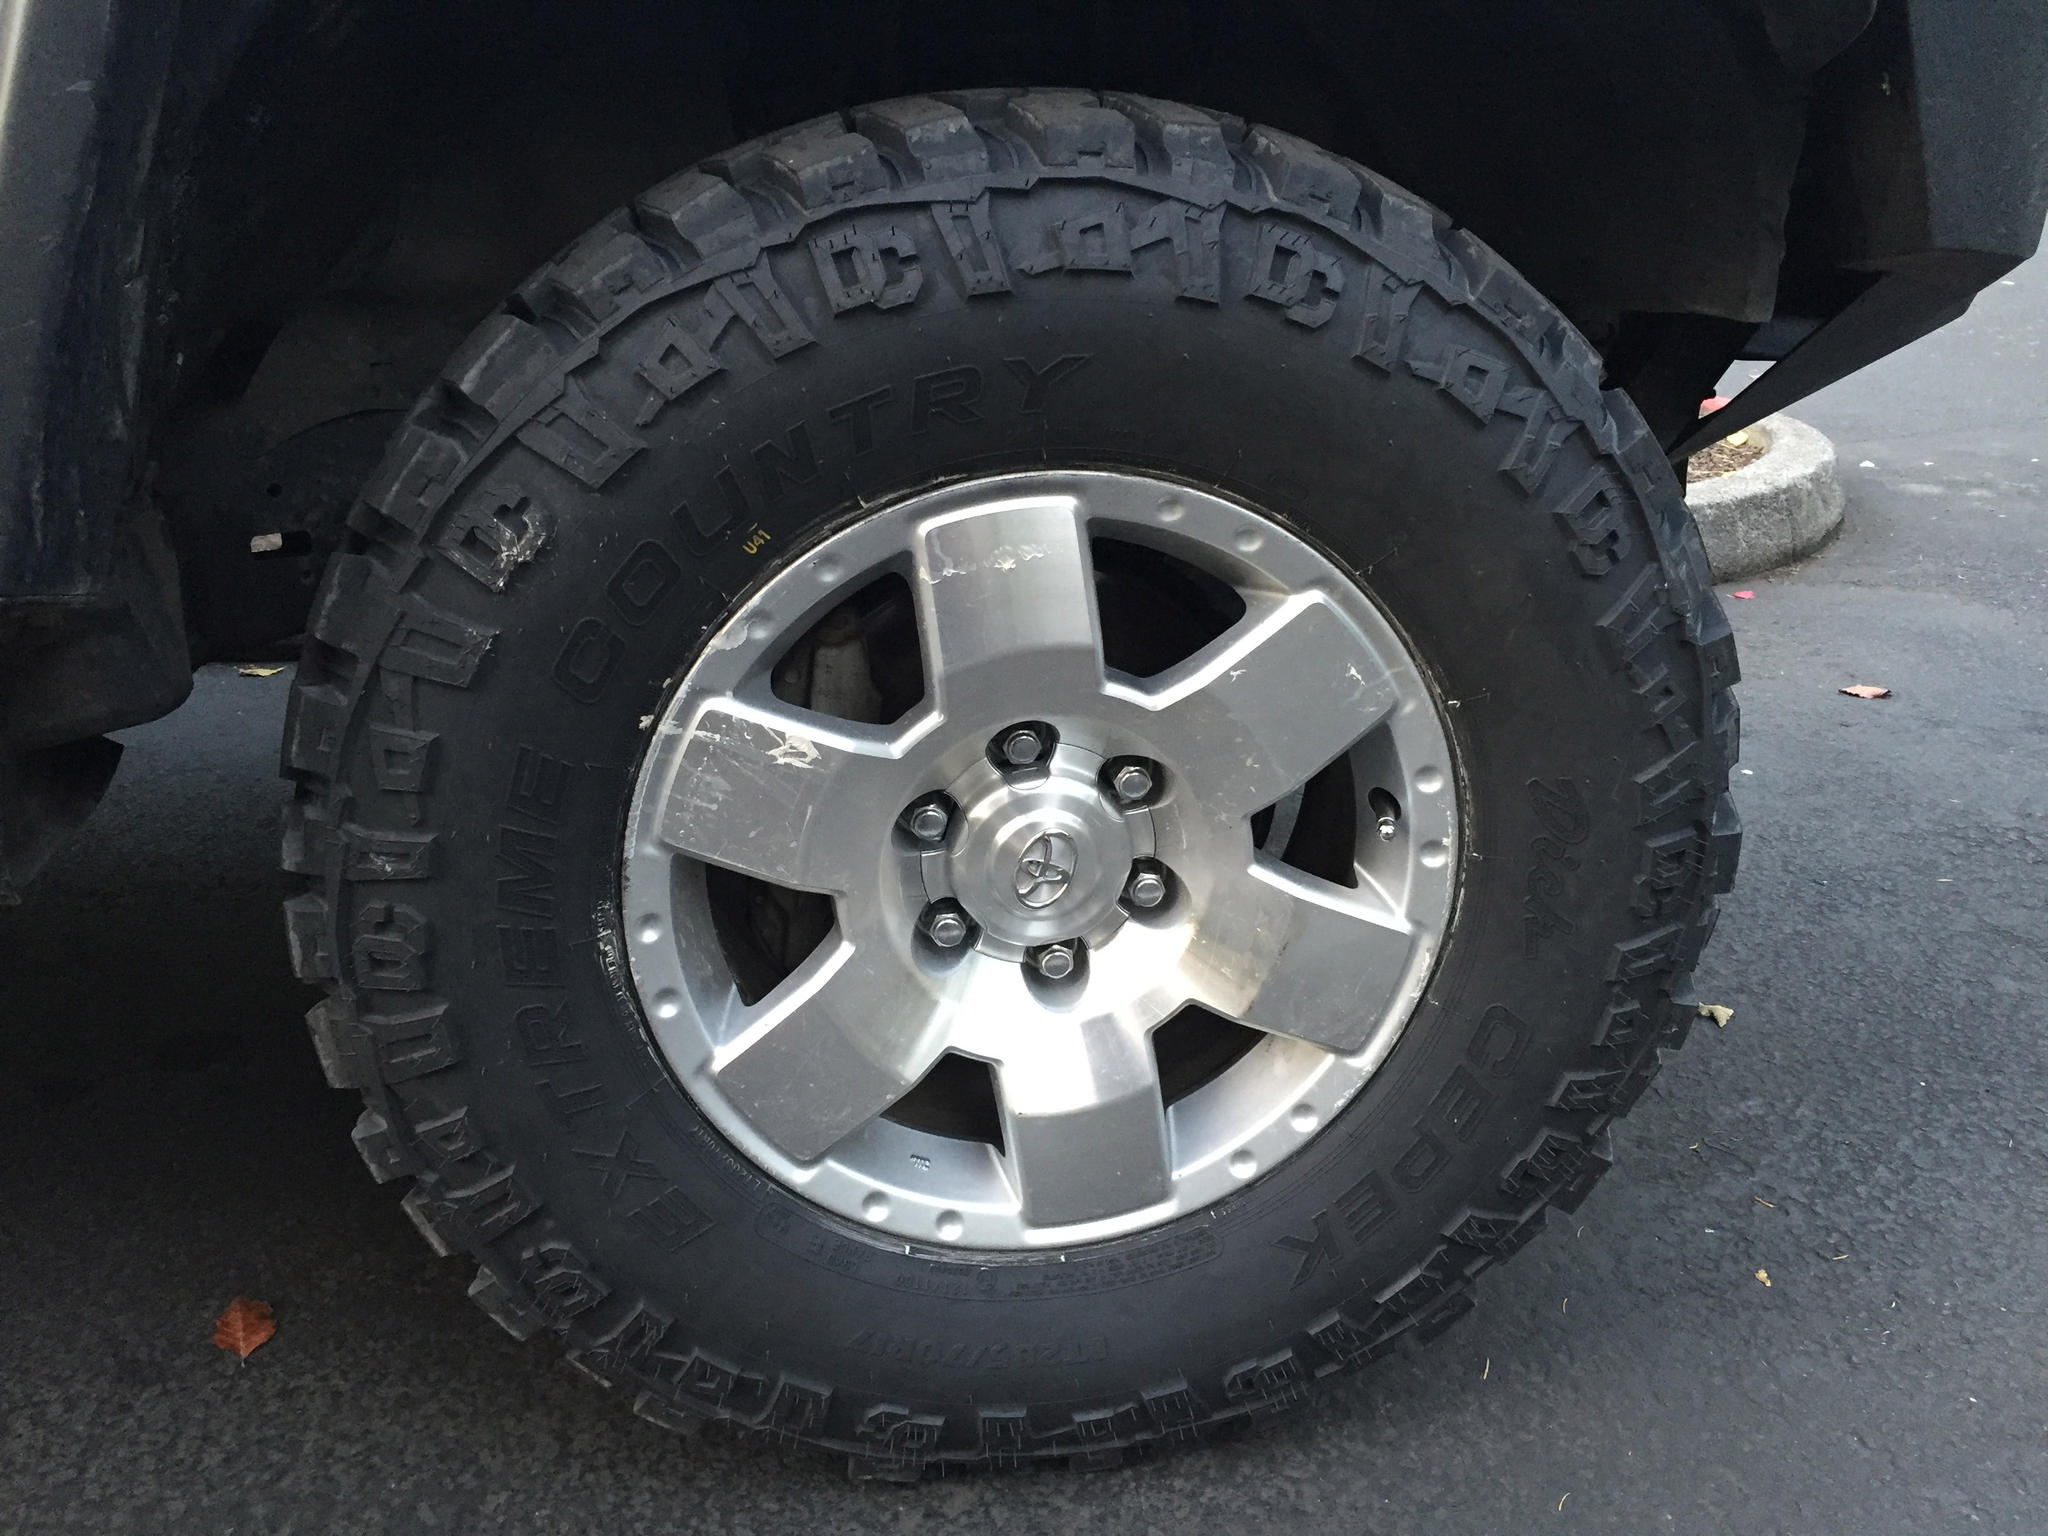 D Cepek Extreme Country Stock Wheels Dc Mt